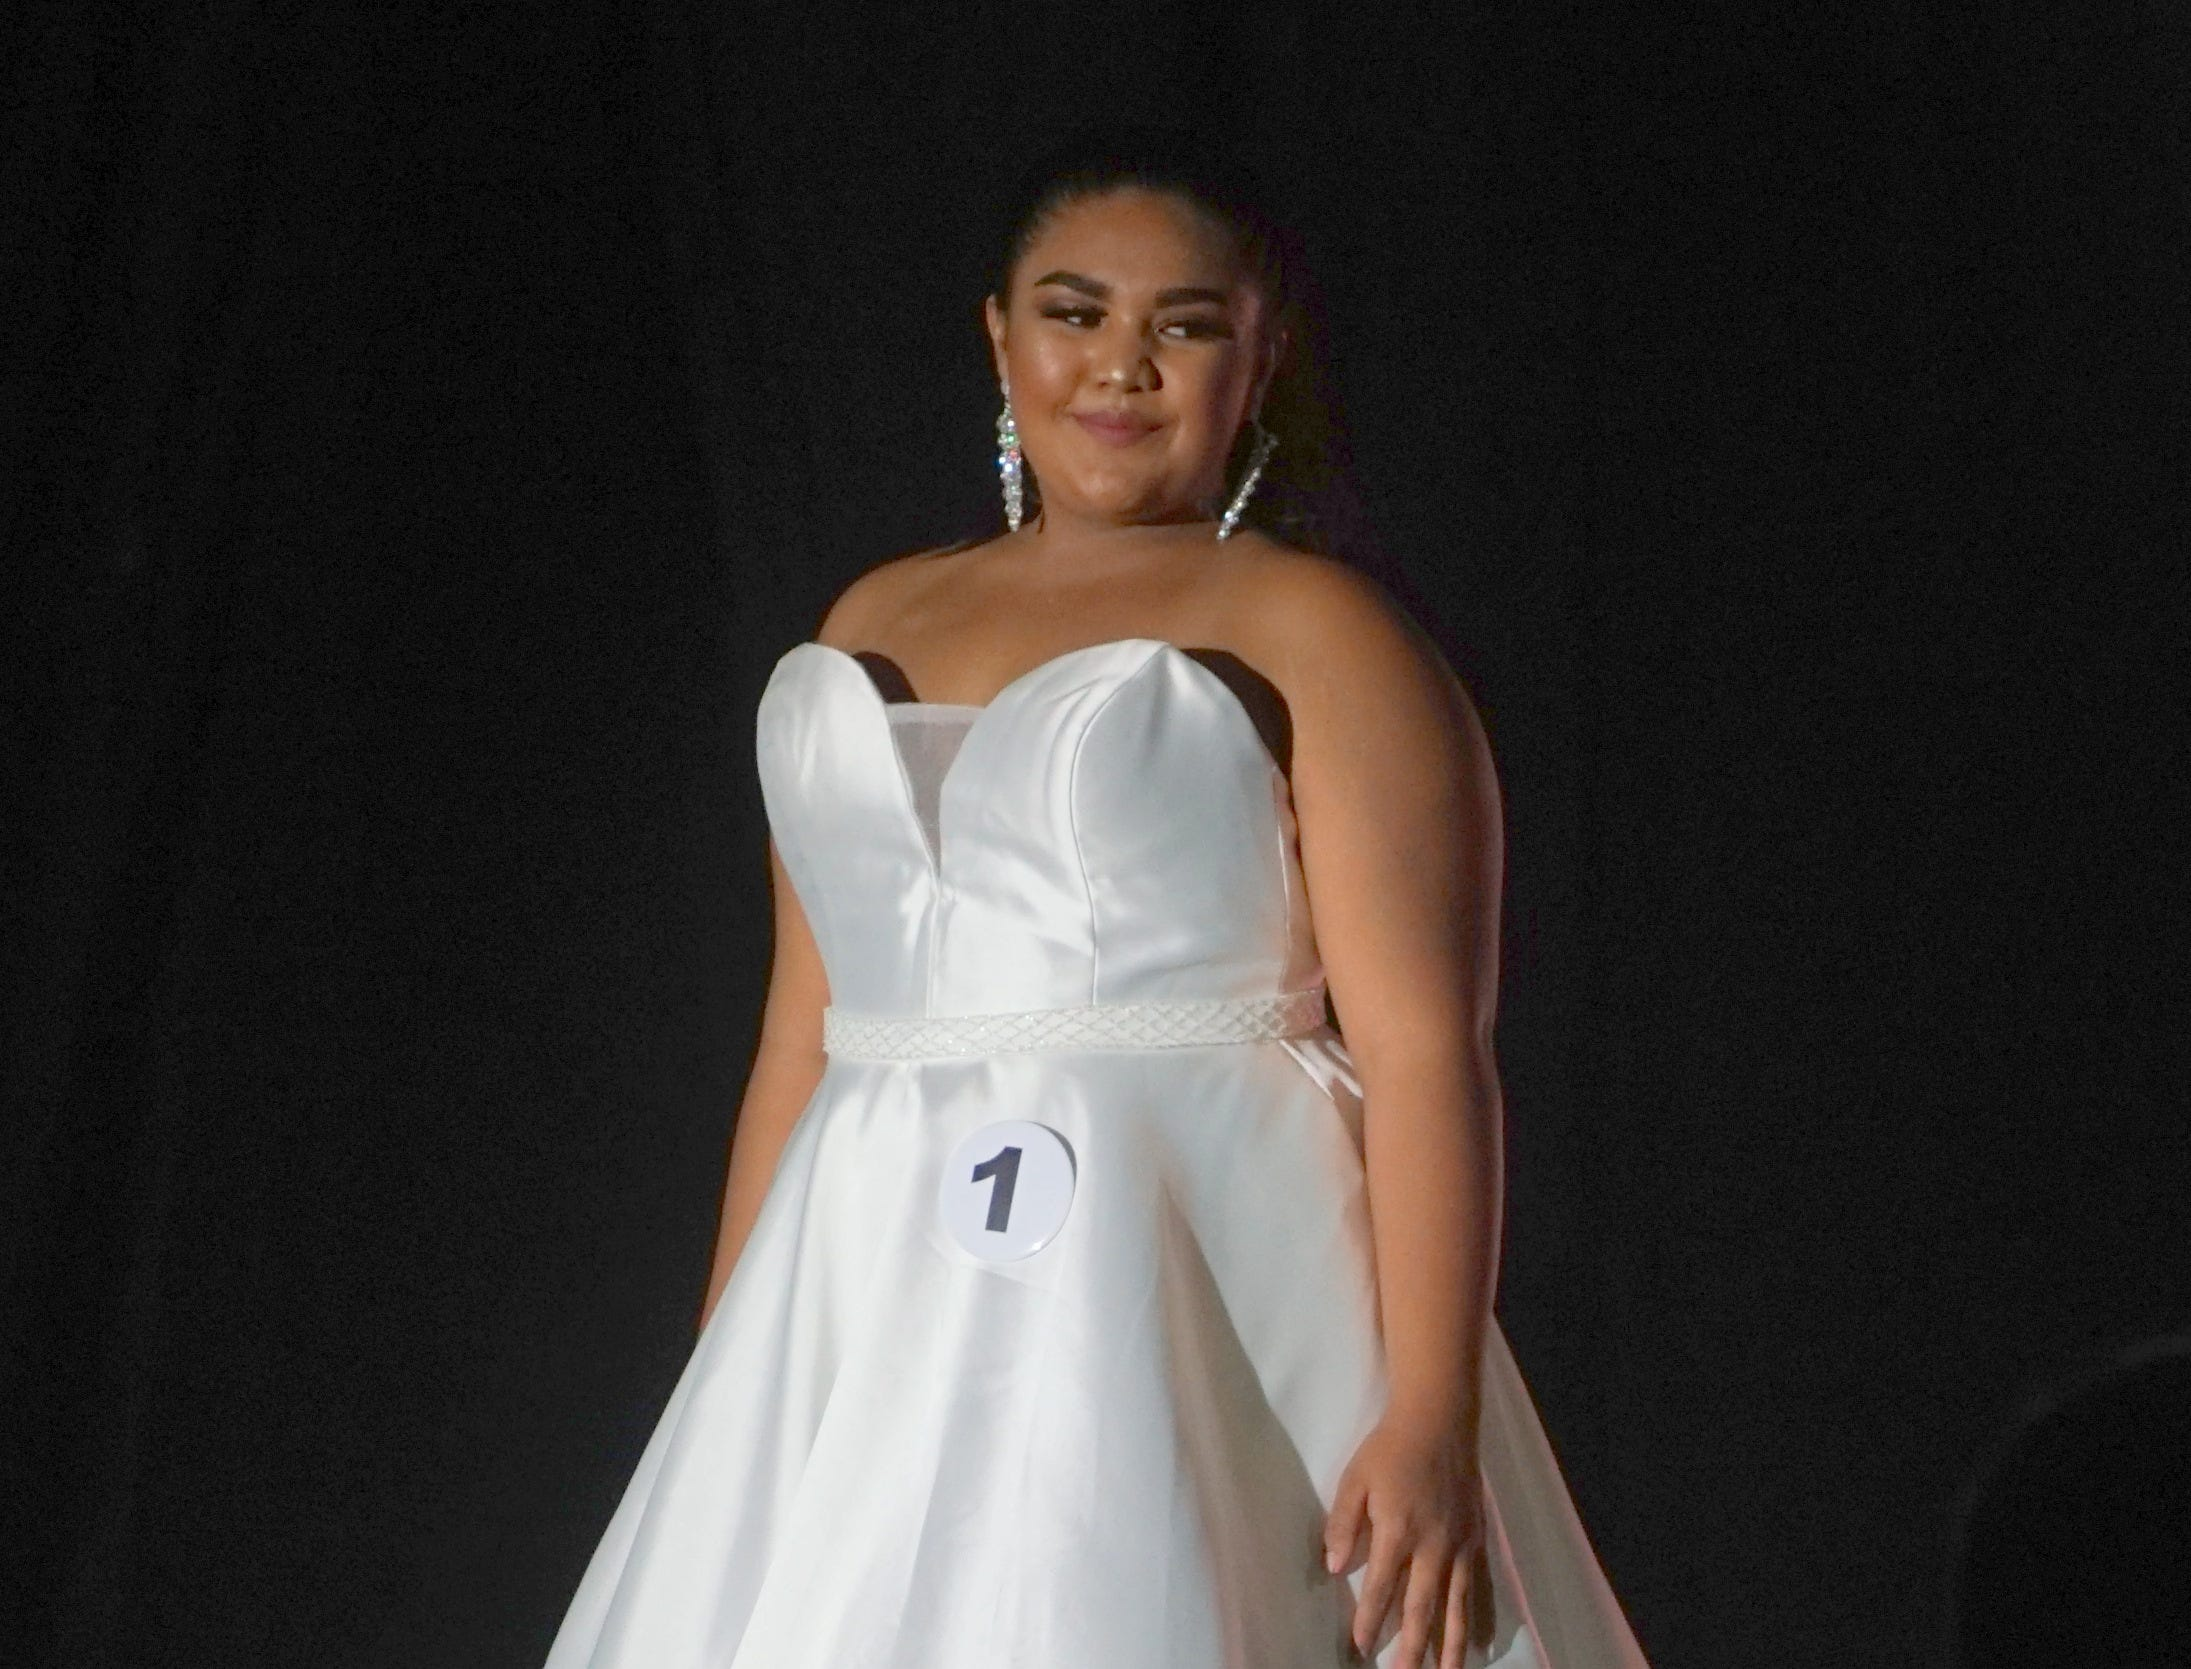 The evening gown portion of the Miss Universe Guam pageant at the Sheraton Laguna Guam Resort on Aug. 15, 2018.